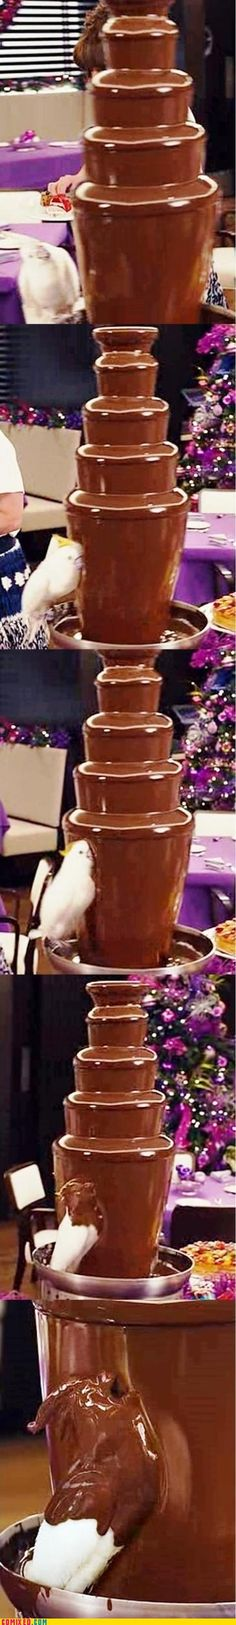 What everyone wants to do to a chocolate fountain...